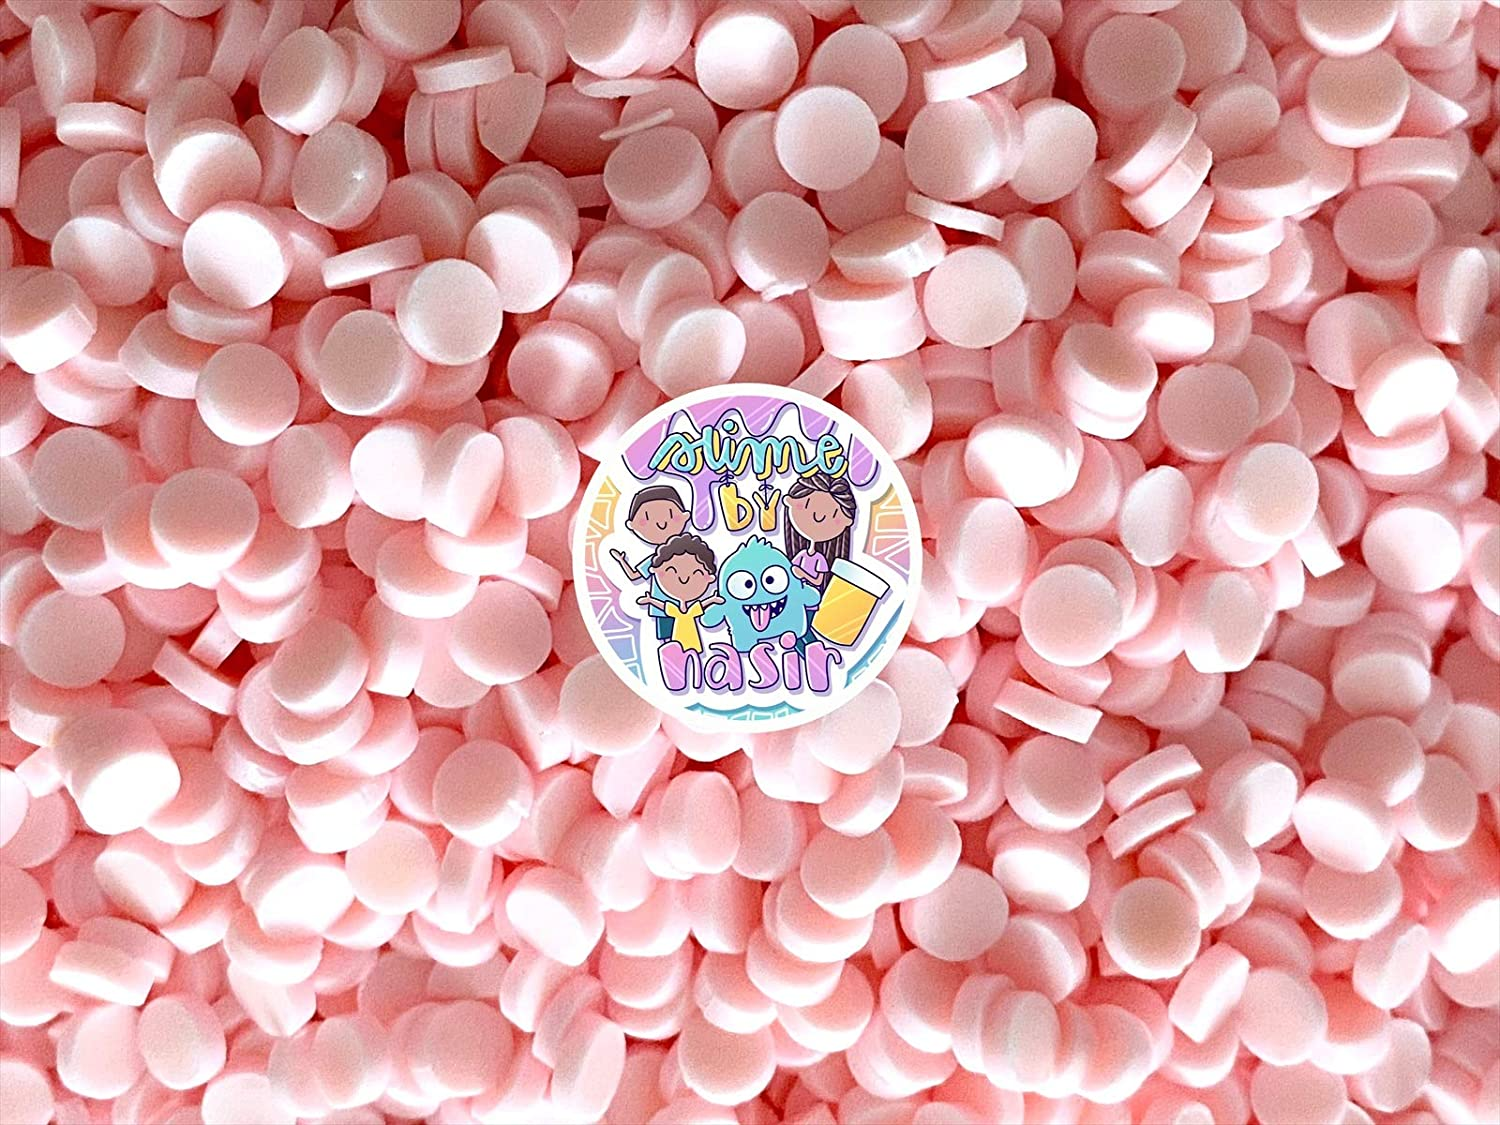 50g Colorful Fake Candy Sweets Sugar Crystals Sprinkles Decoden Resin Cabochons Decorations for Fake Cake Dessert Simulation Food Fake Dessert Polymer Clay (Baby Pink Clay Confetti Circles)